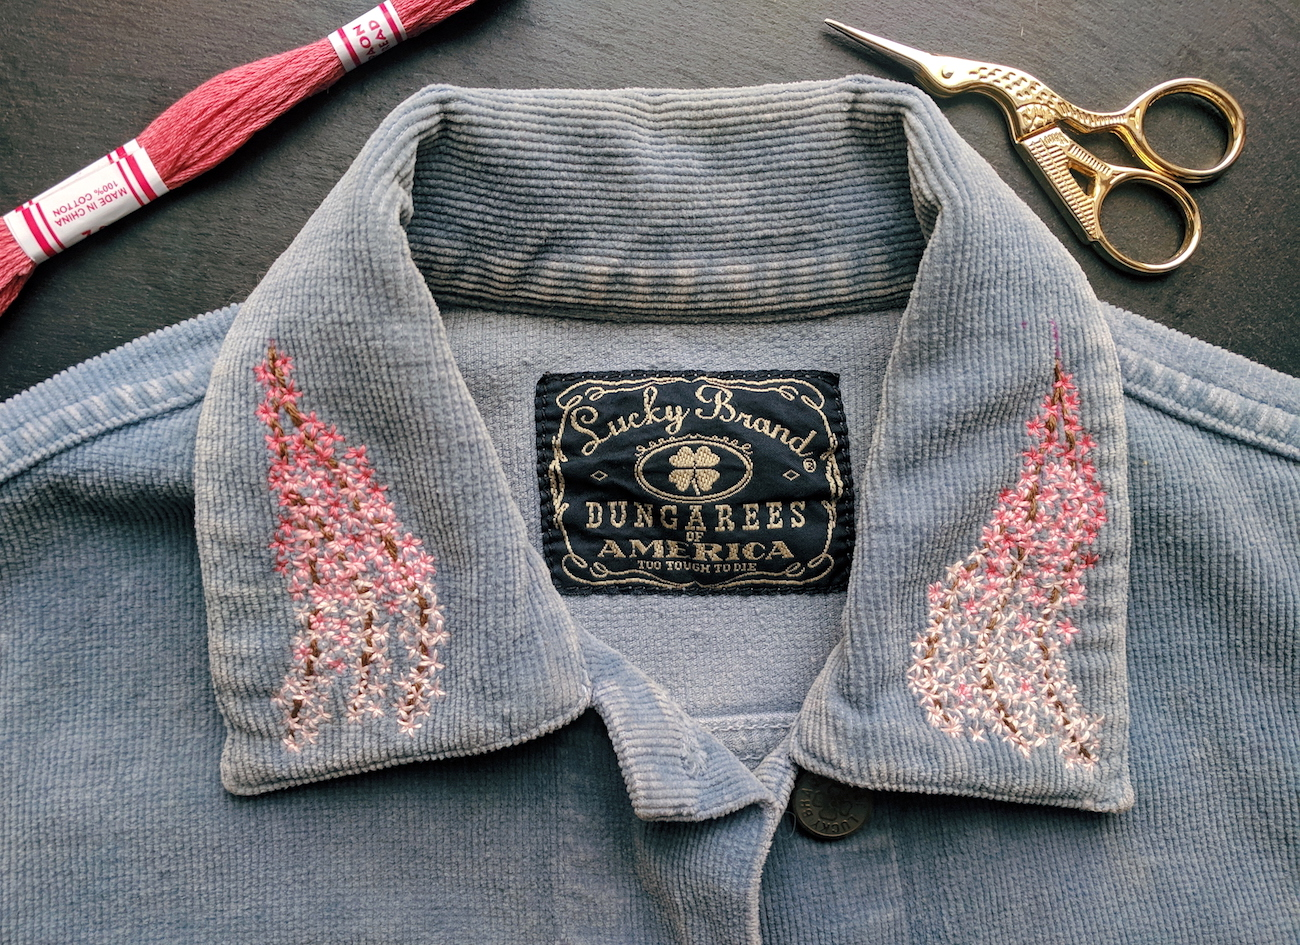 Cherry blossoms on the collar of a vintage corduroy jacket